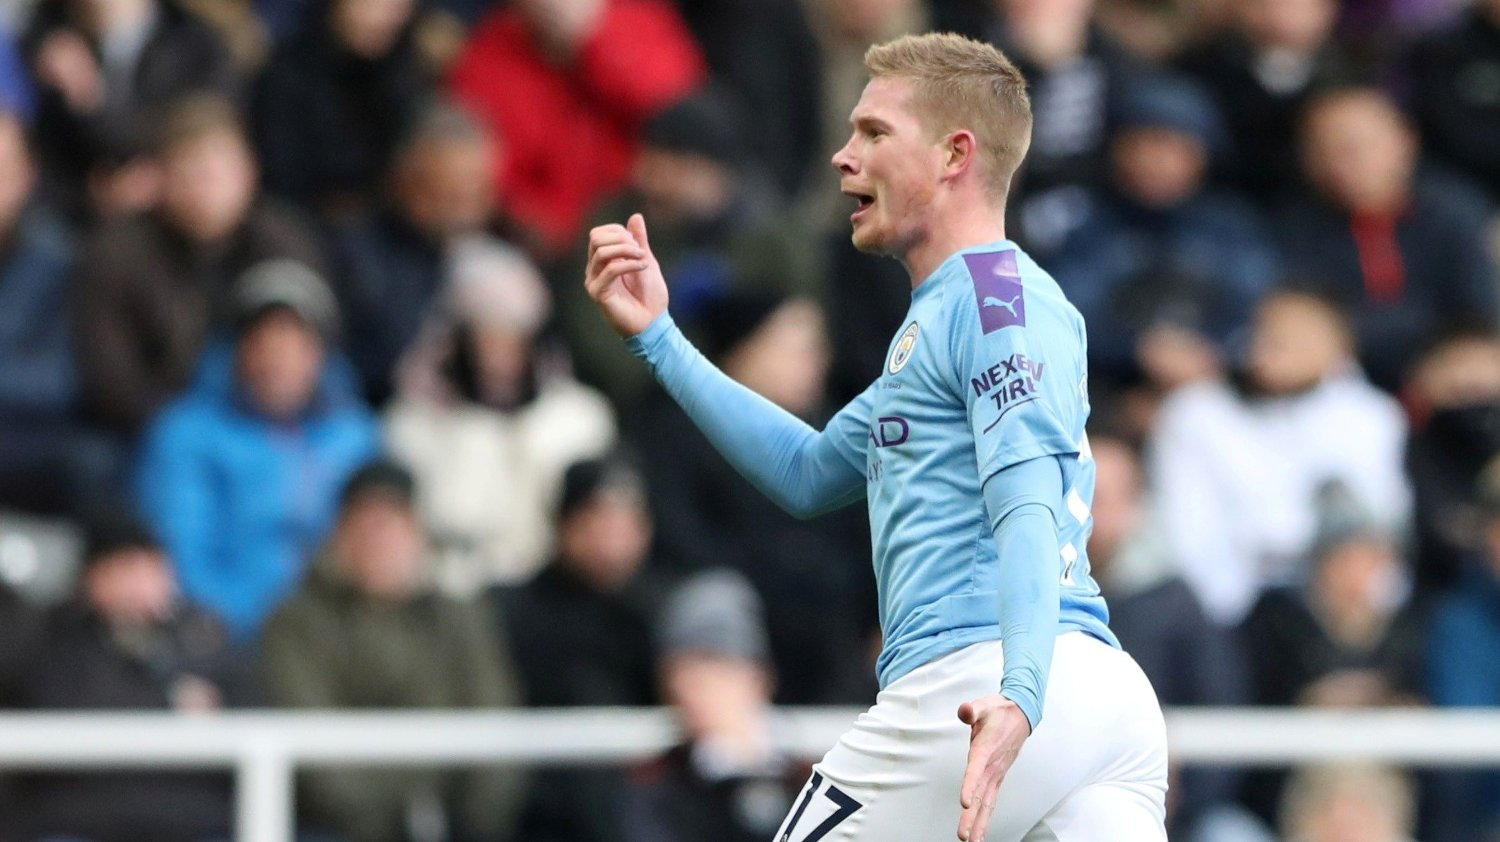 Soccer Football - Premier League - Newcastle United v Manchester City - St James' Park, Newcastle, Britain - November 30, 2019 Manchester City's Kevin De Bruyne celebrates scoring their second goal REUTERS/Scott Heppell EDITORIAL USE ONLY. No use with unauthorized audio, video, data, fixture lists, club/league logos or